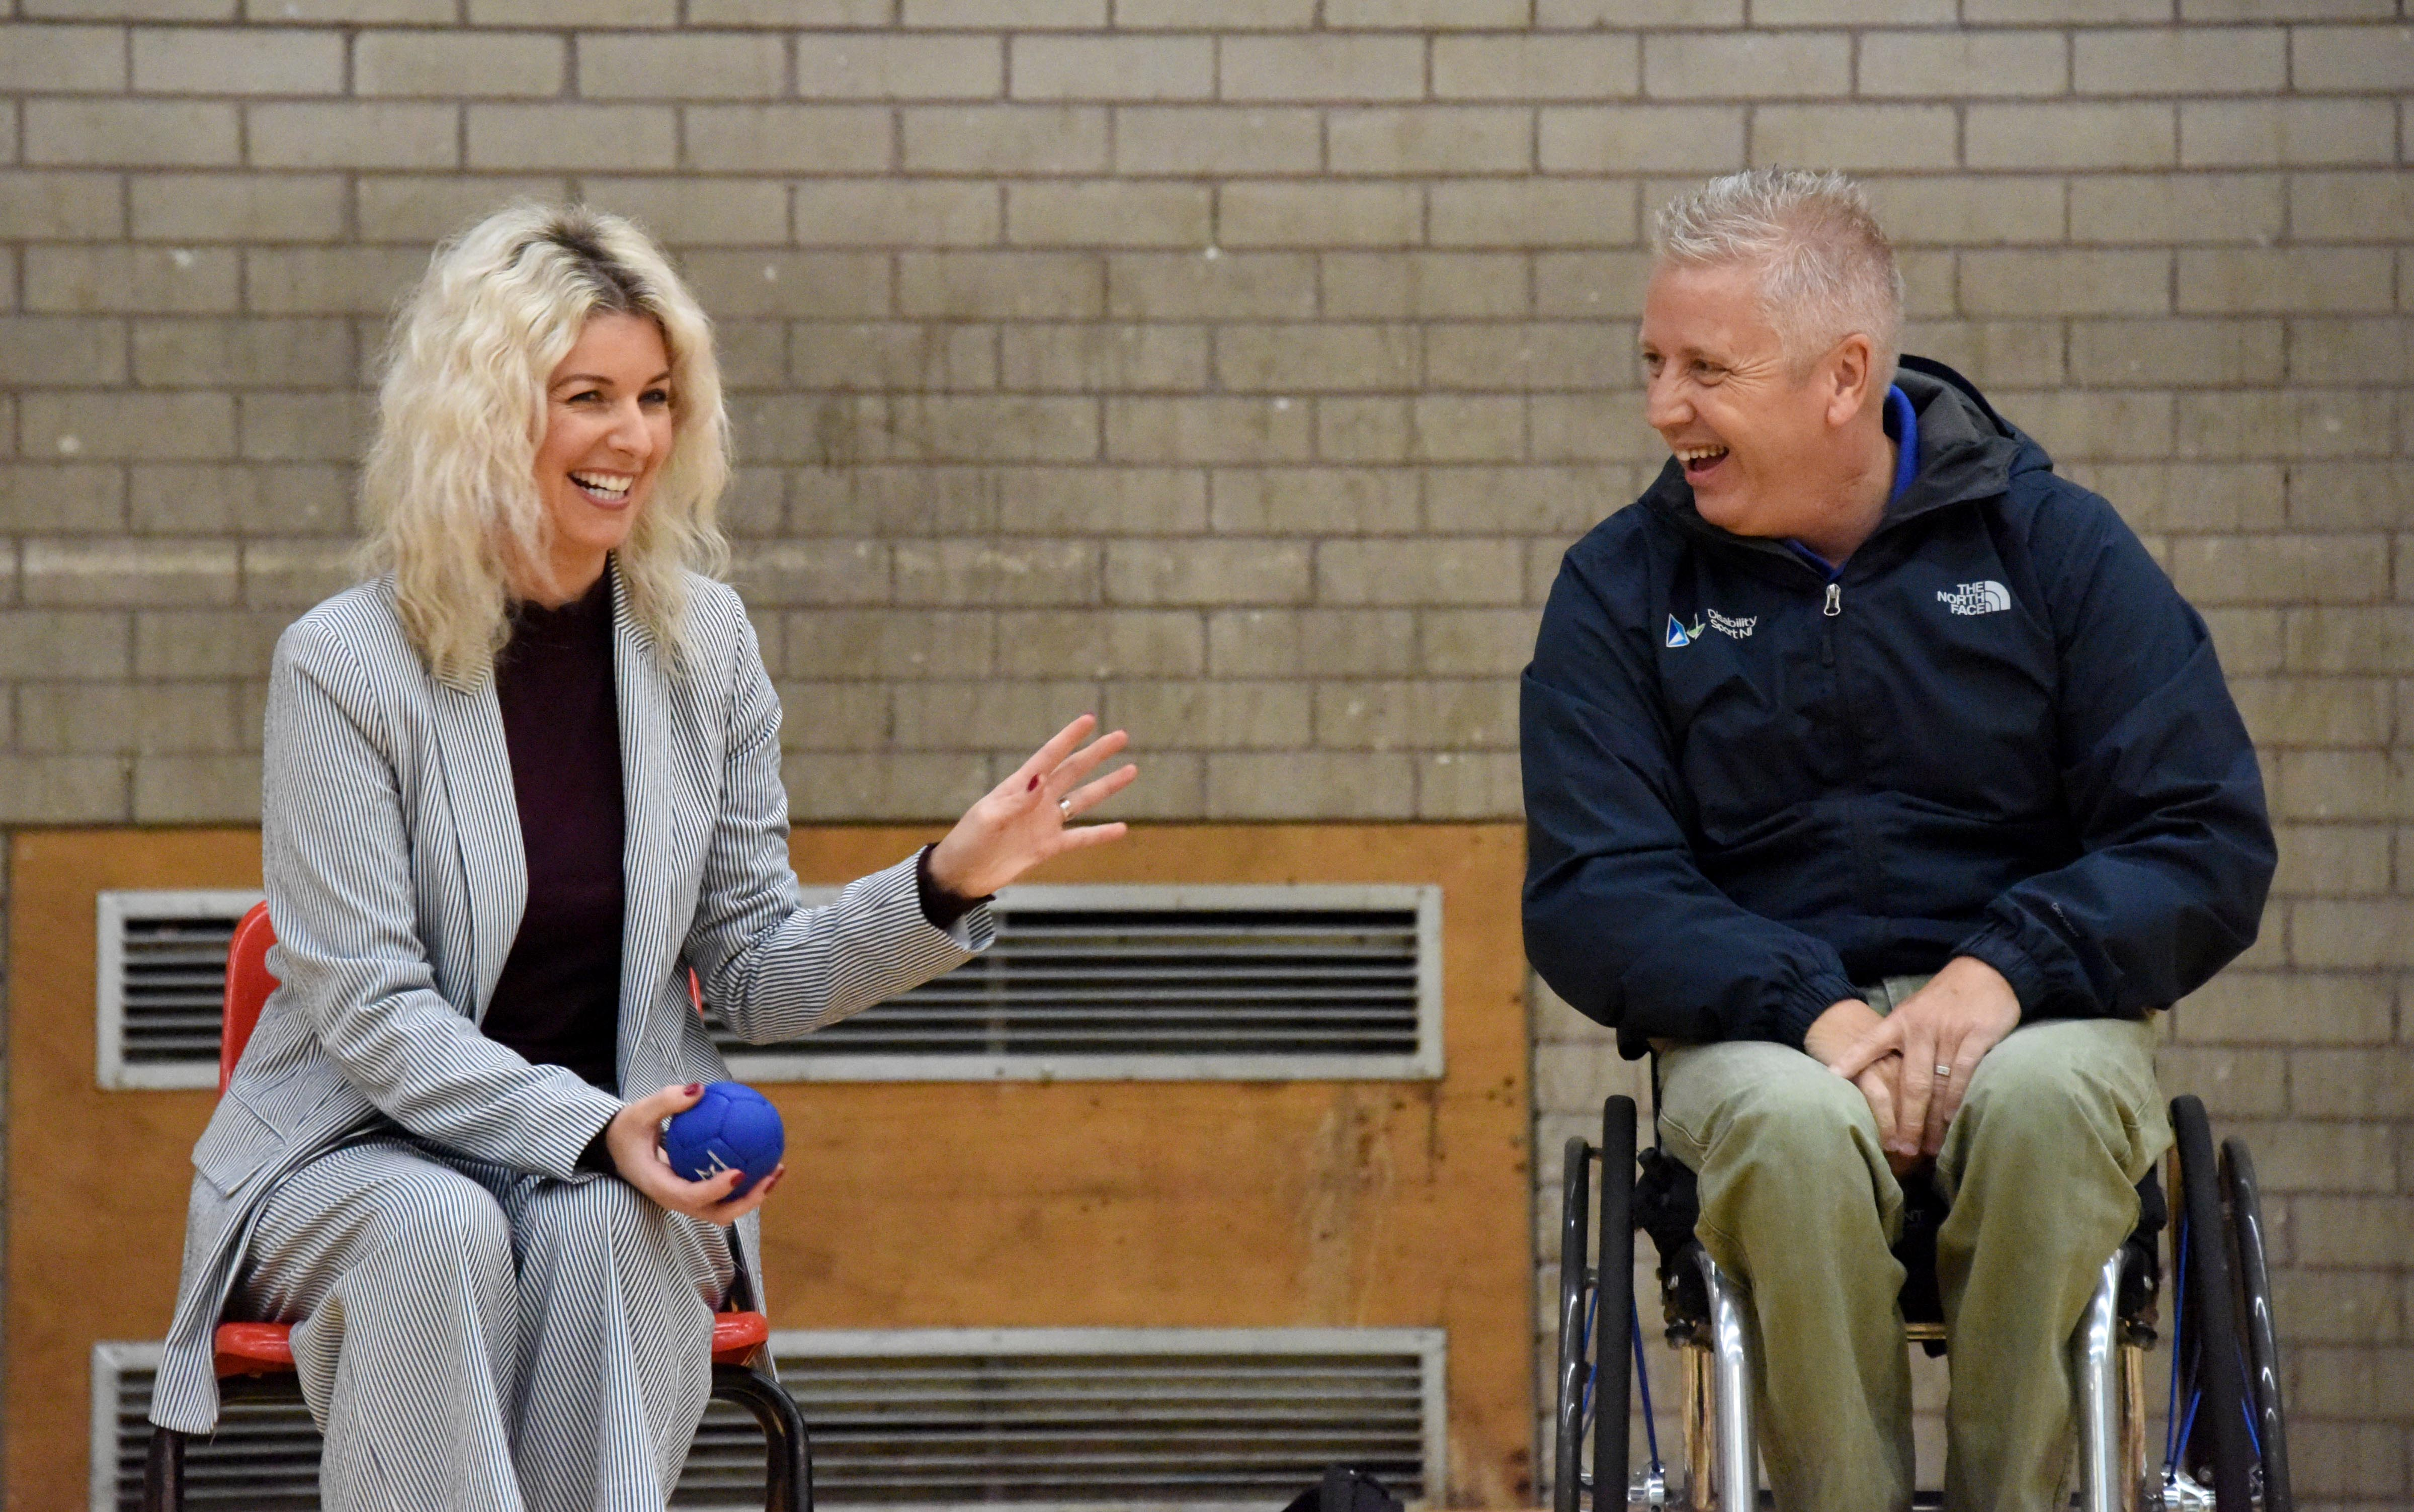 An image of Aubrey Bingham from Disability Sport NI and Lynne Lyness from Progressive Building Society playing Boccia